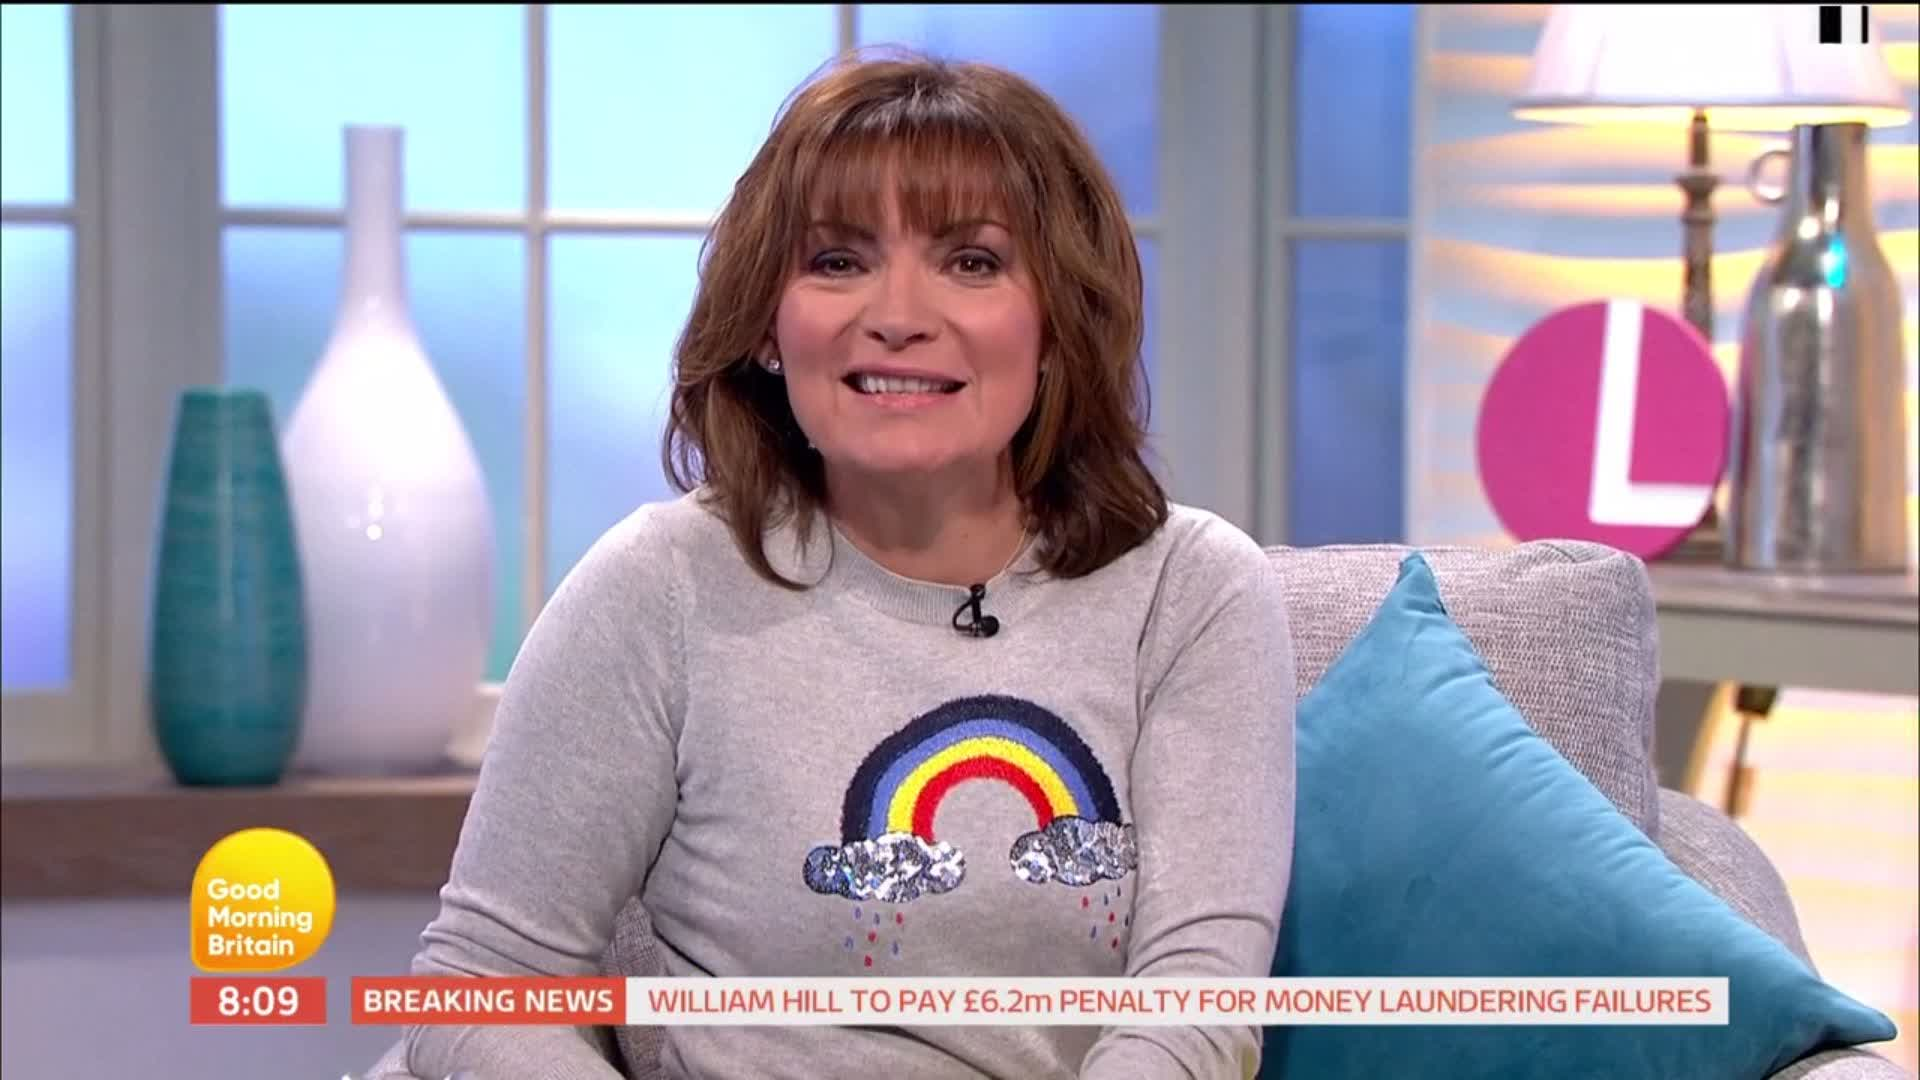 RT @GMB: Oh yes, we're loving your jumper @ITVLorraine! 😀 https://t.co/NI7zRTuqCM